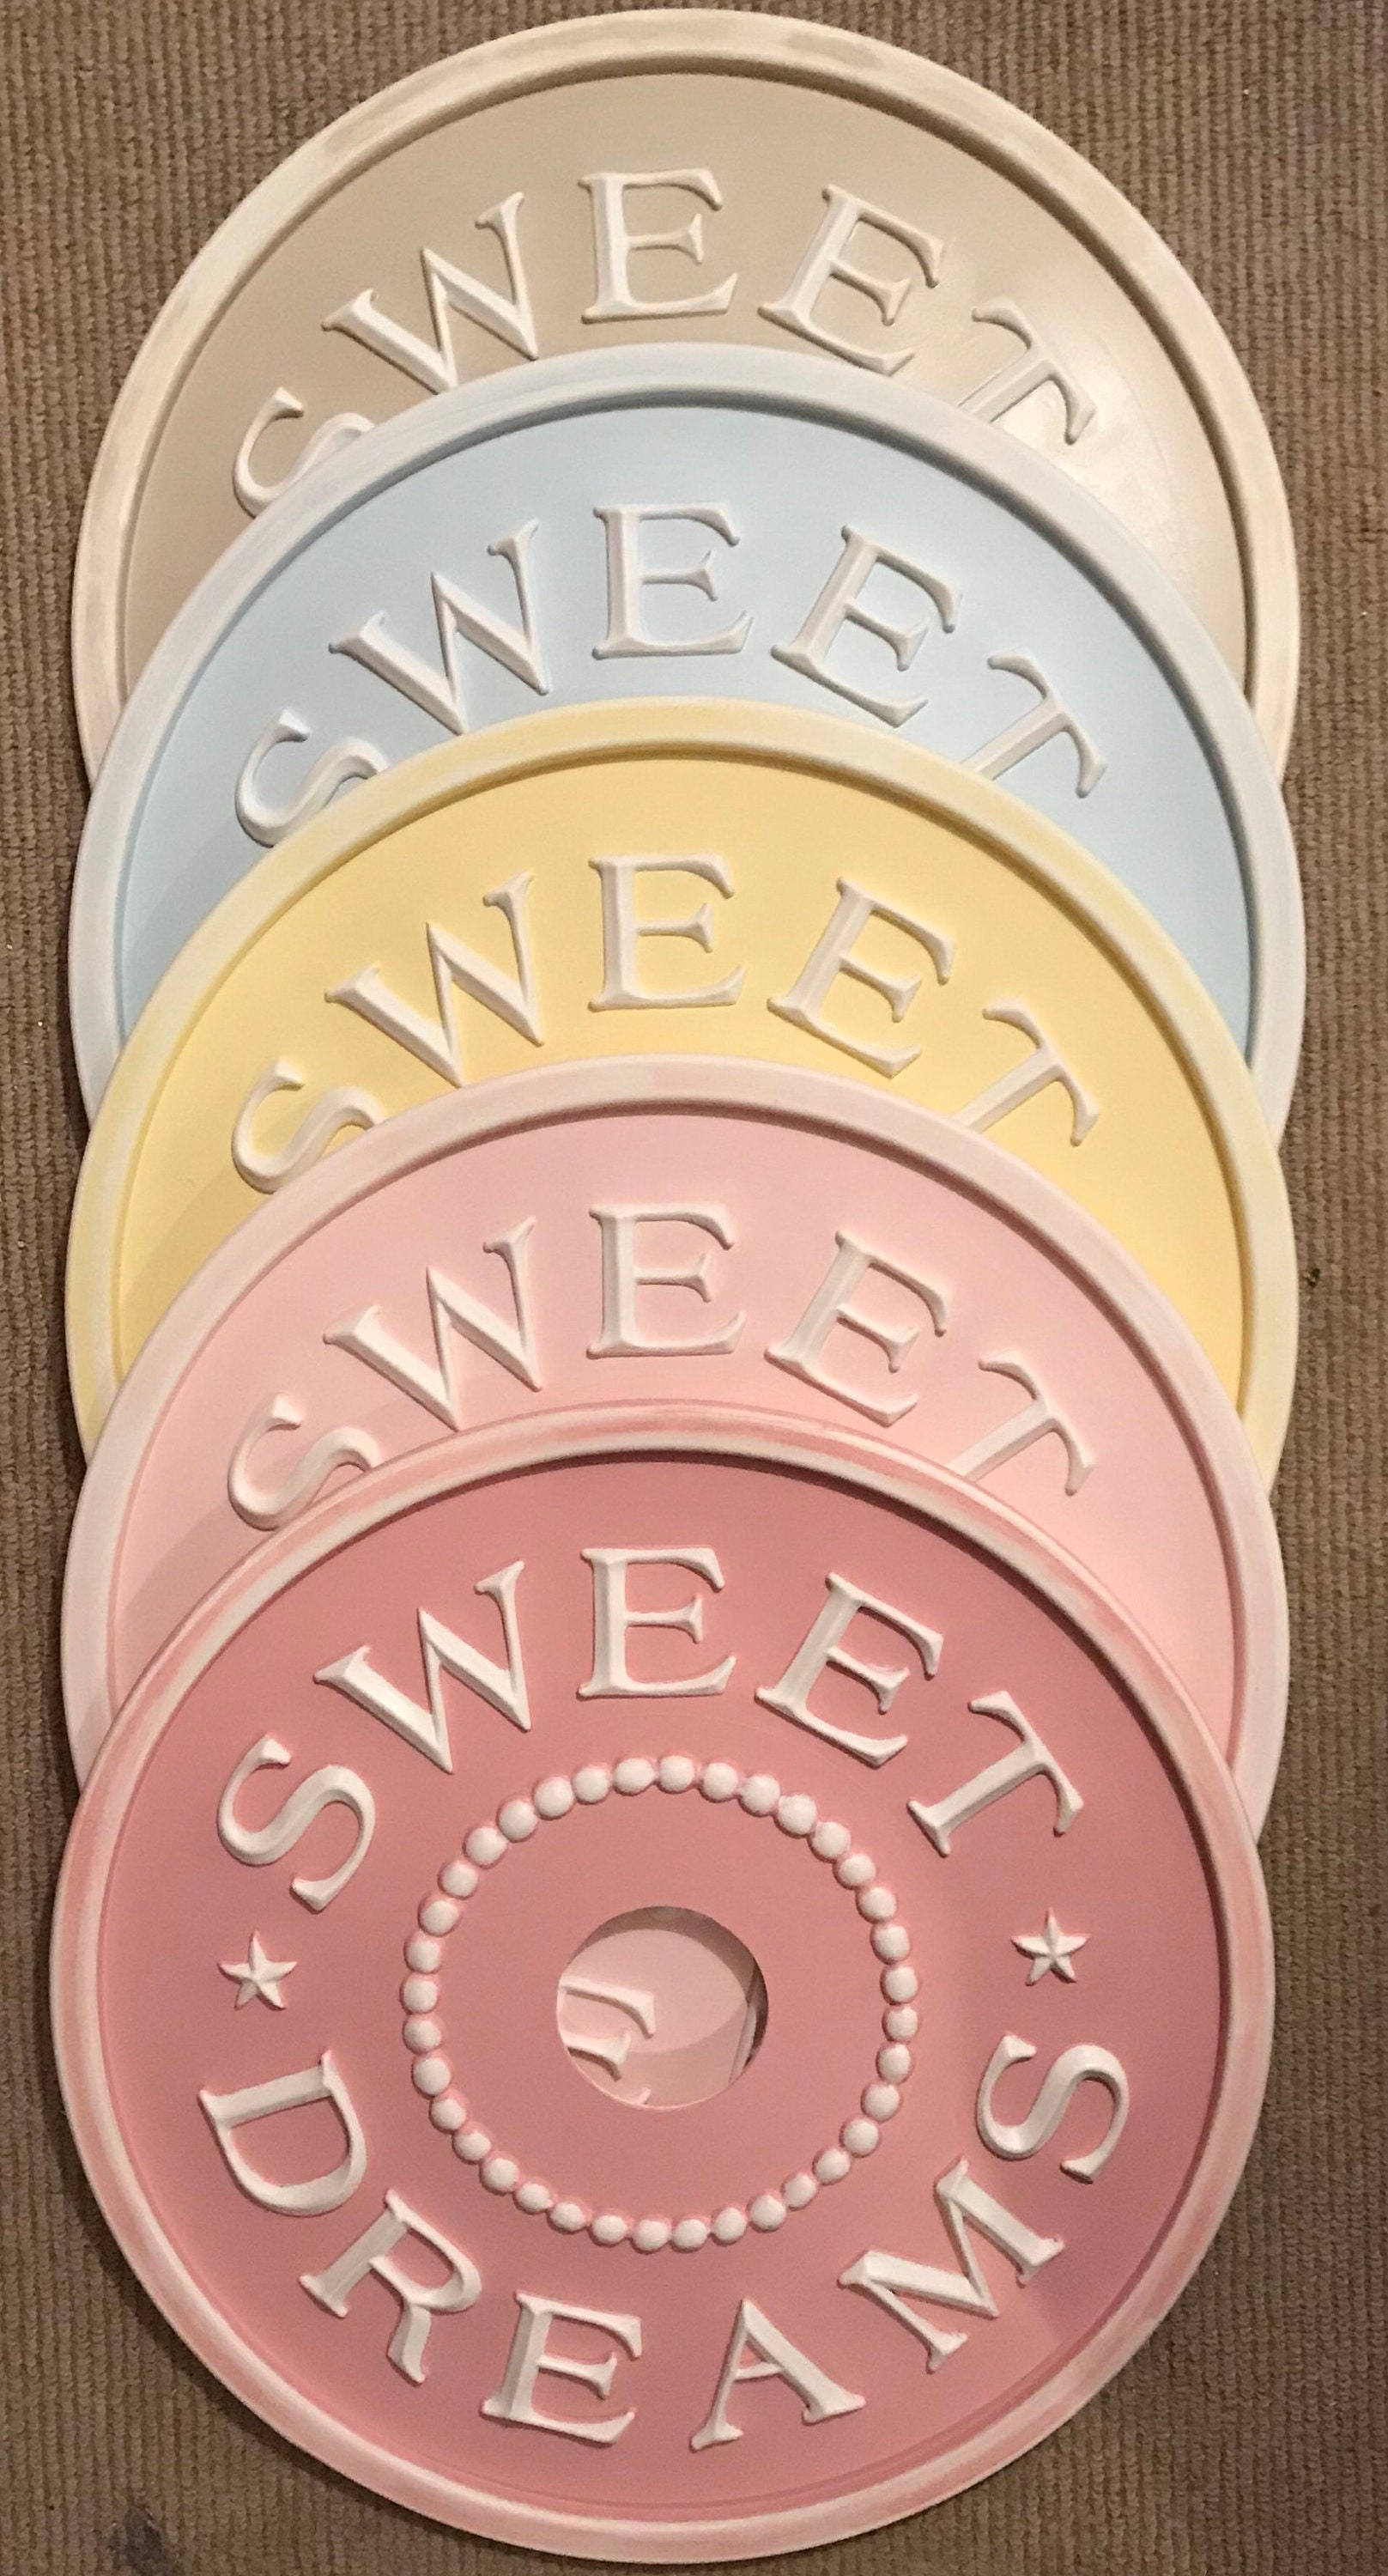 Ceiling Medallions, Sweet Dreams Ceiling Medallion, Home and Living,  Lighting, Pink Decor, Yellow Decor, Marie Ricci, Farmhouse decor, baby